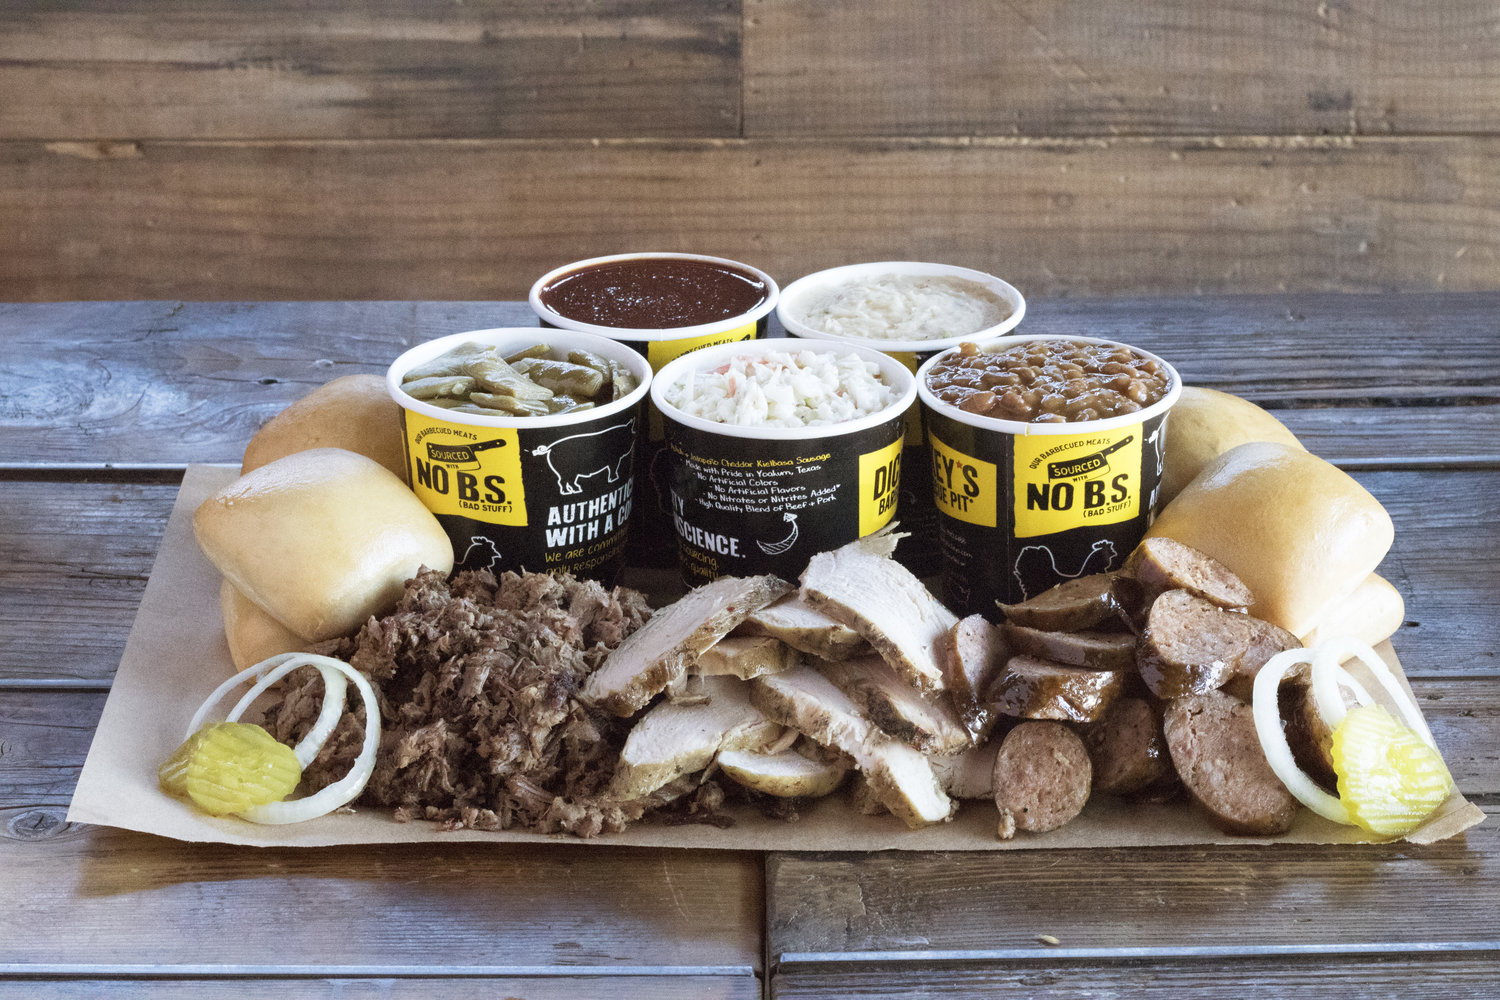 Fast Casual: Dickey's Opens in Rolla, Missouri